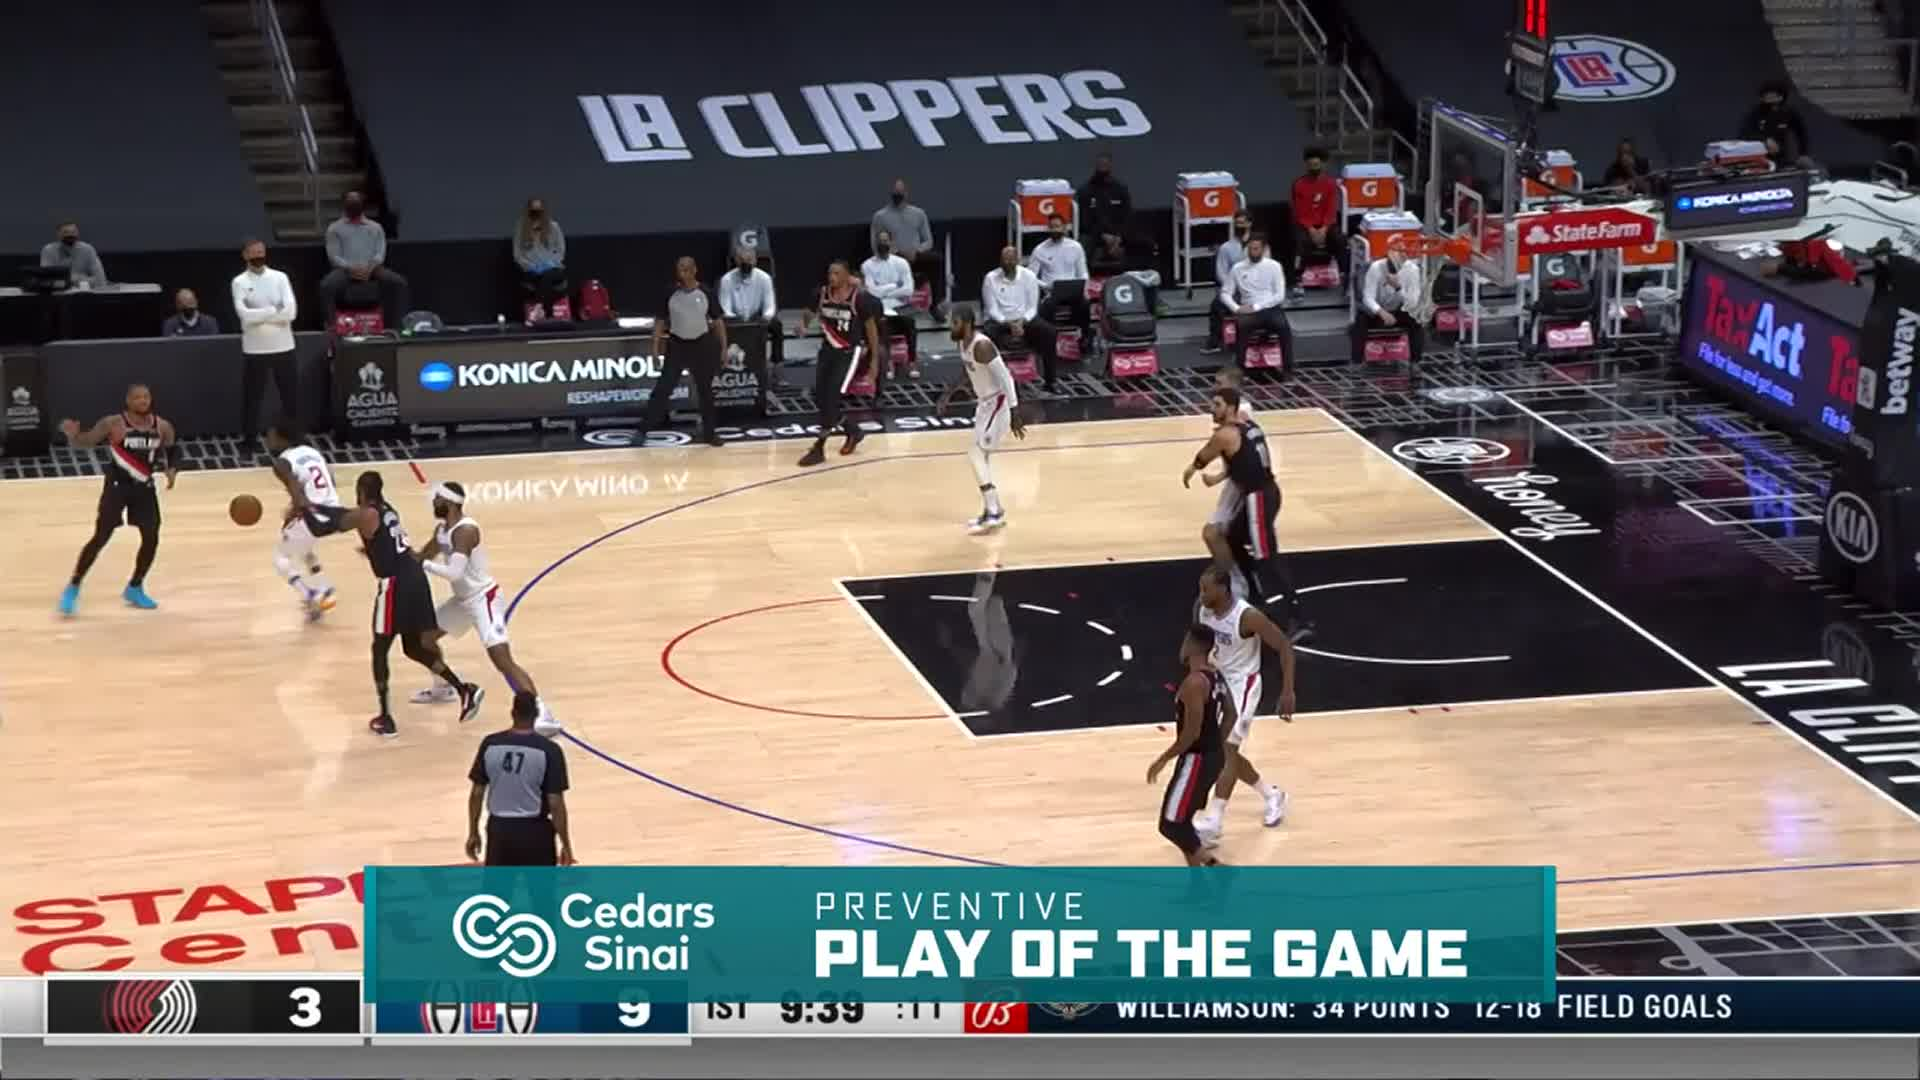 Cedars-Sinai Preventive Play of the Game | Clippers vs Trail Blazers (4.6.21)